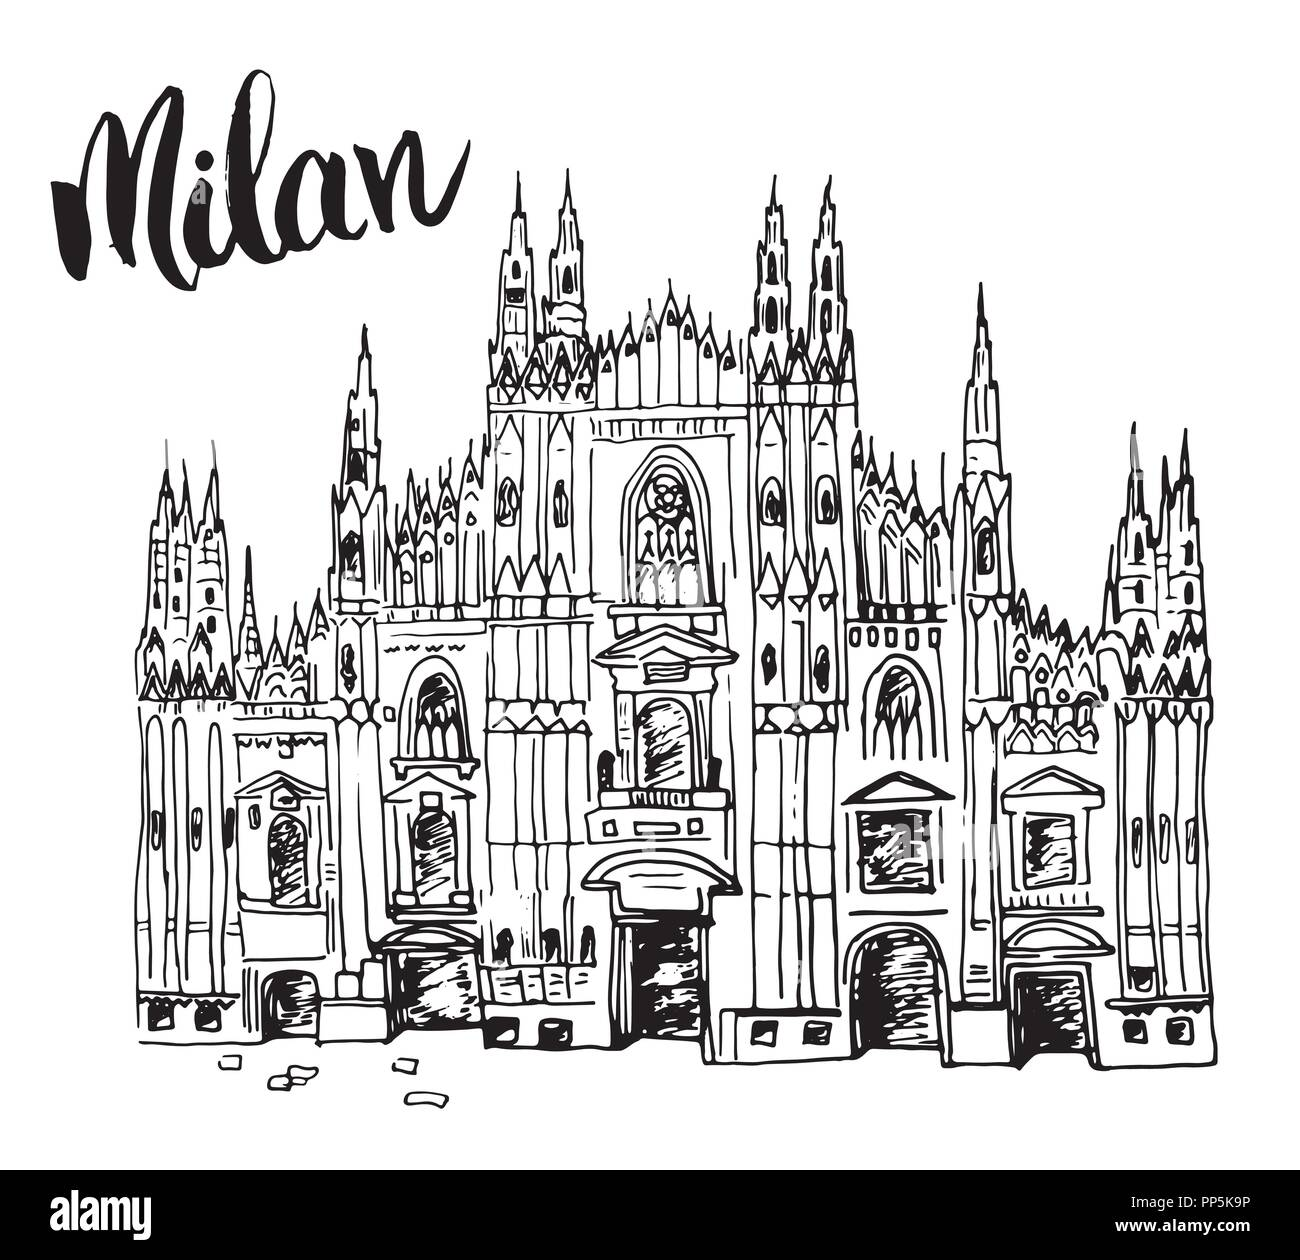 Duomo cathedral in Milan, Italy. Hand drawn sketch of Italian famous church building with lettering Milan, vector illustration isolated on white backg - Stock Vector